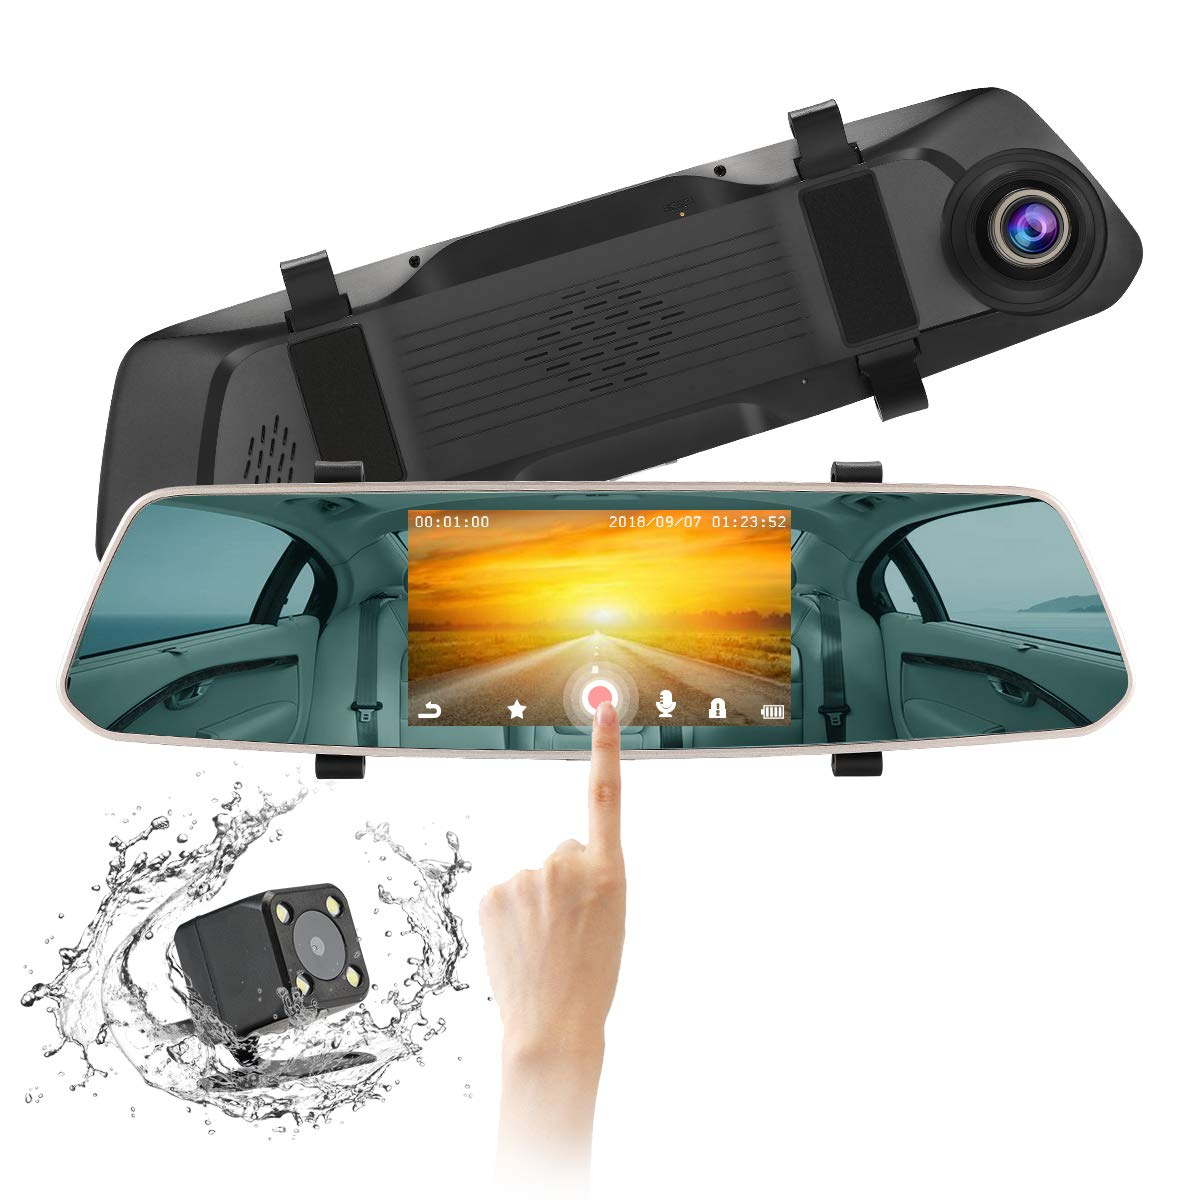 ULU Car Dash Cam 5.0' MIPI Touch Screen Dual Lens Rearview Mirror Camera Dash Board Camera 170 Degree Wide Angle Car Recorder with WDR, G-Sensor, Motion Detection, Loop Recording